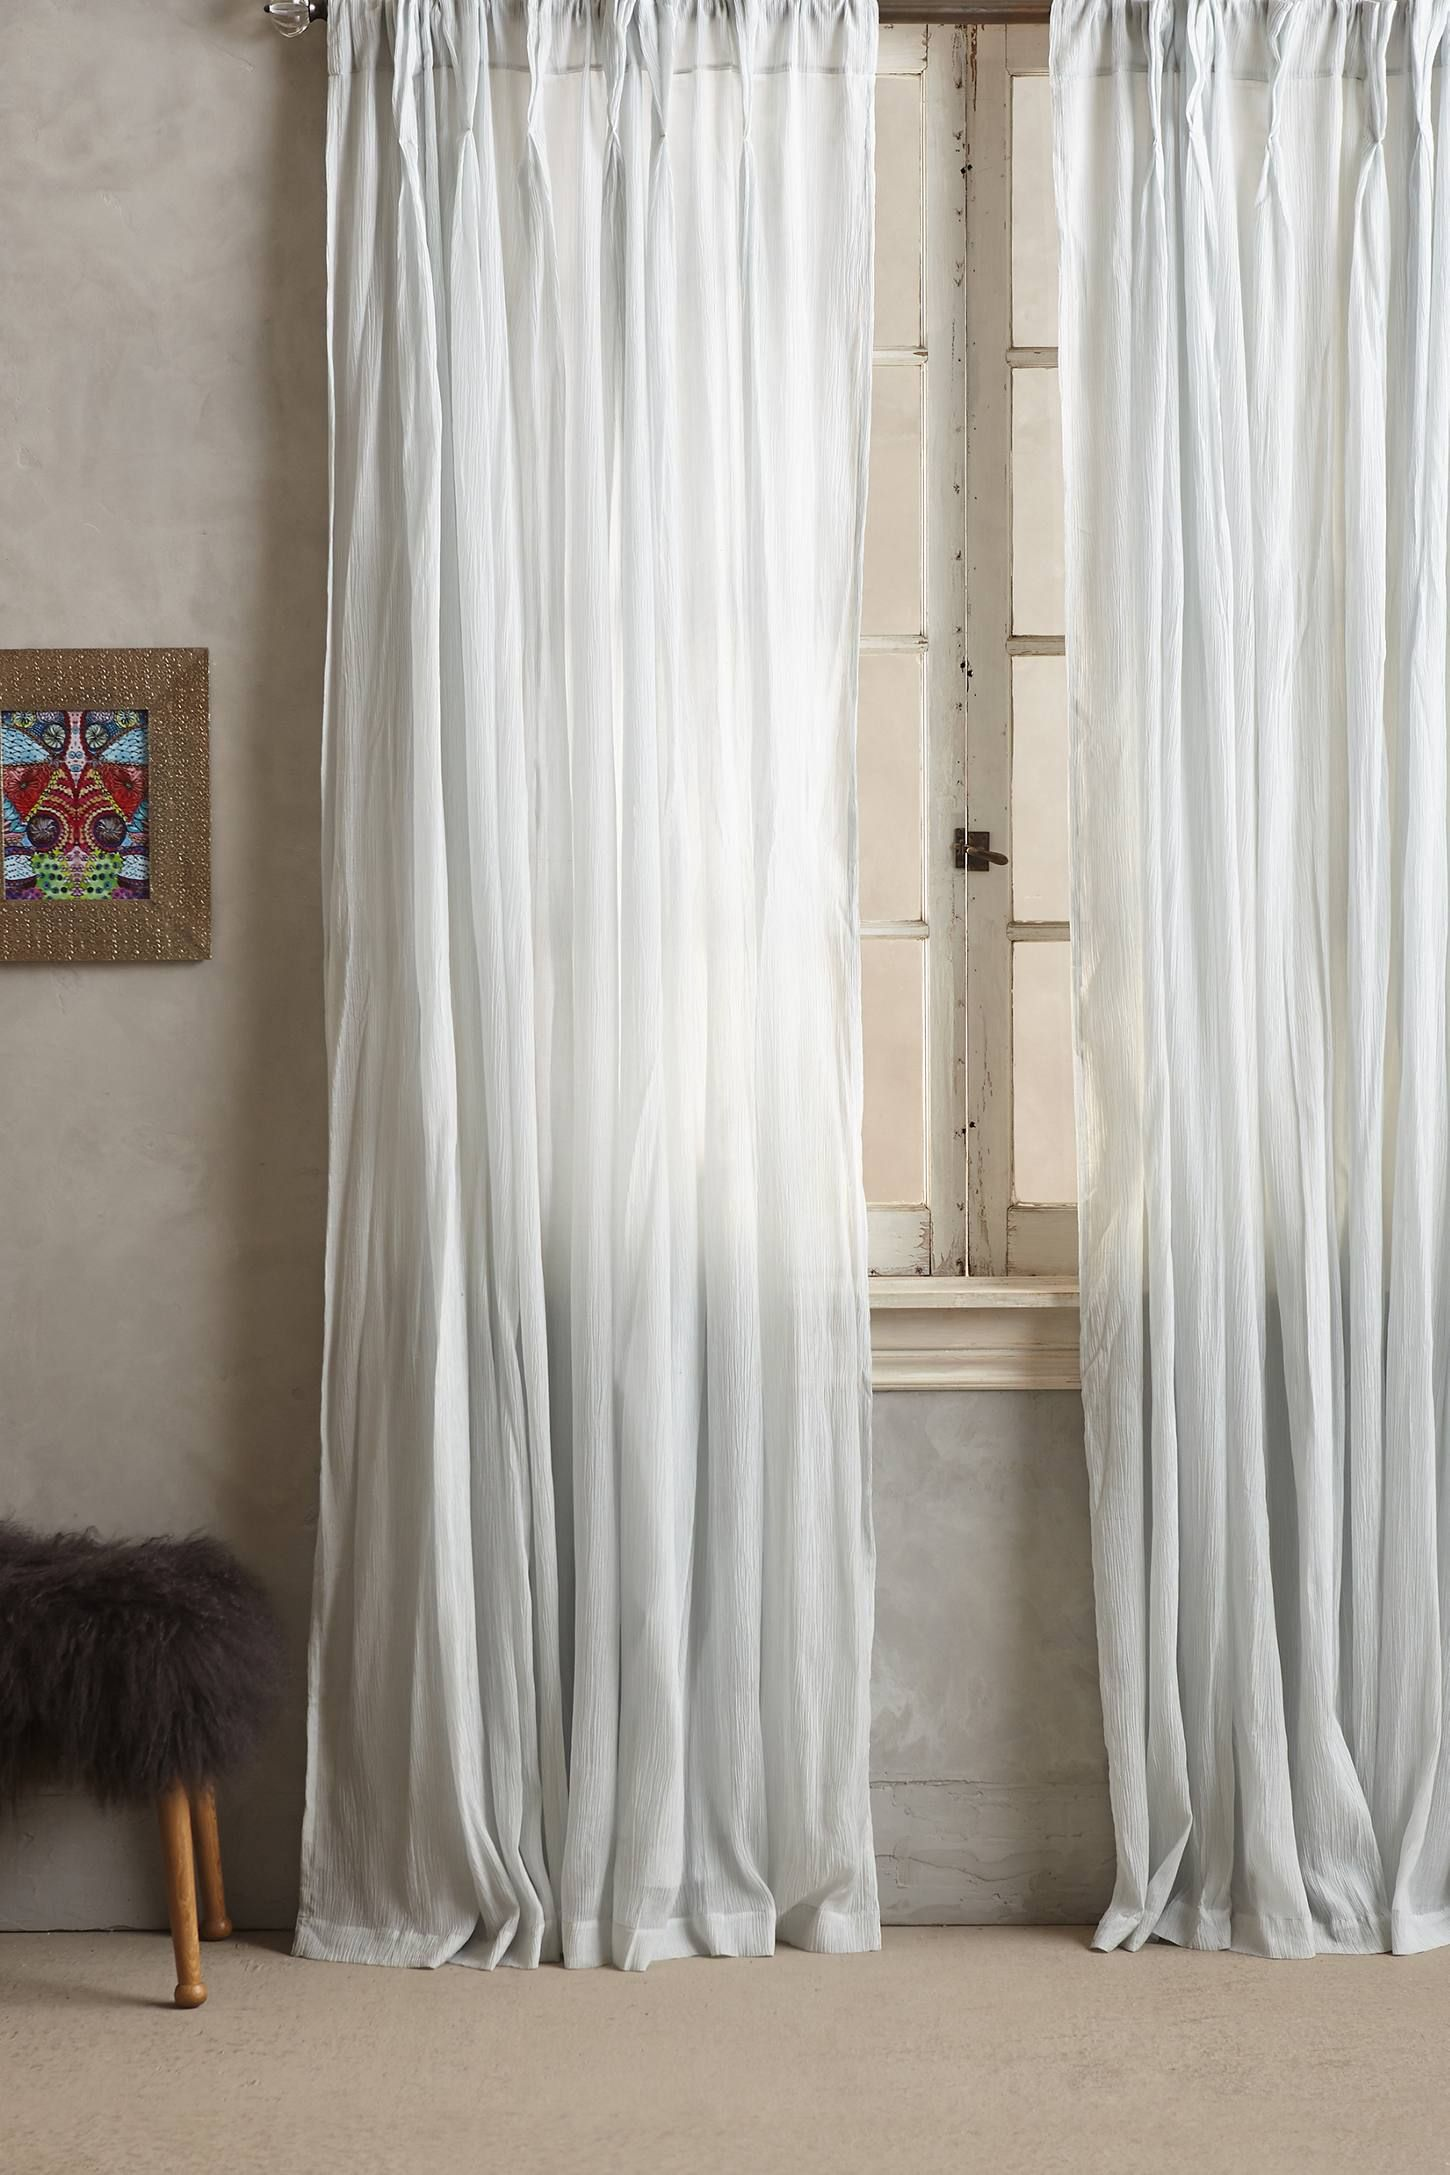 Orlaya Curtain | Anthropologie, Curtain inspiration and Pleated curtains